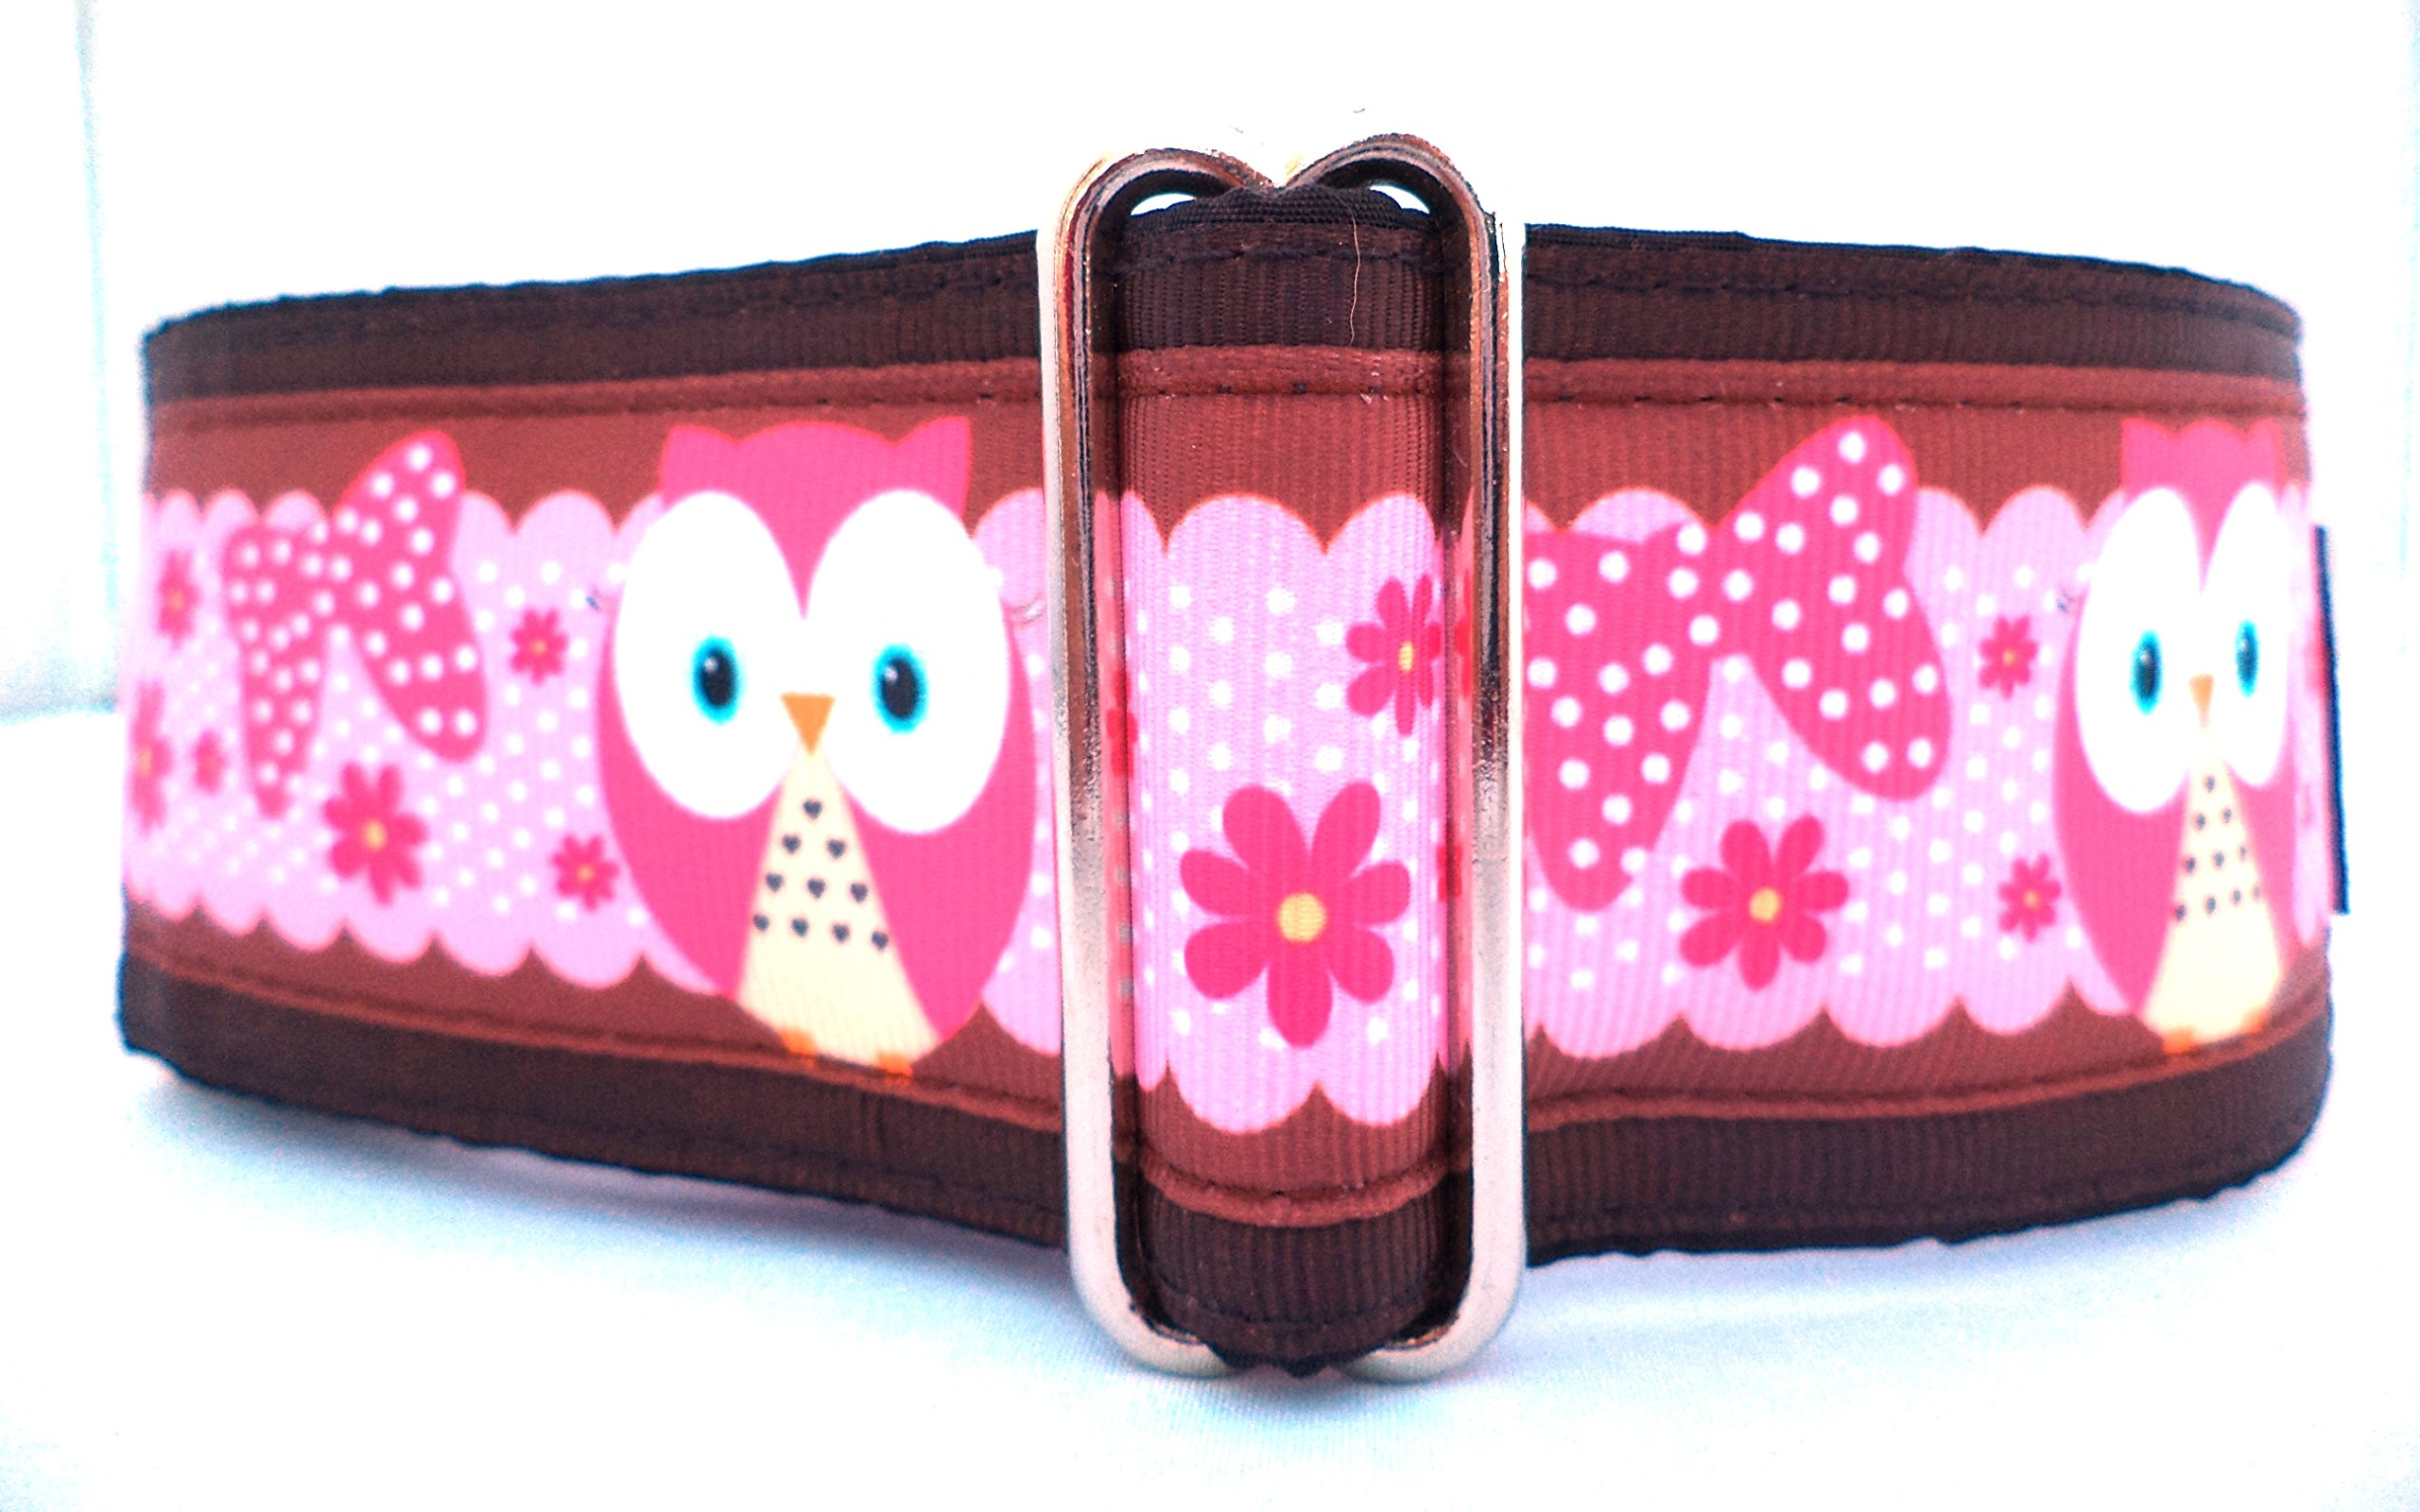 Regal Hound Designs 2'' Wide Martingale Dog Collar, Lined, 2 Sizes: Medium, Large/XL, Pink and Chocolate Owls Design (Large/XL 17-26'')